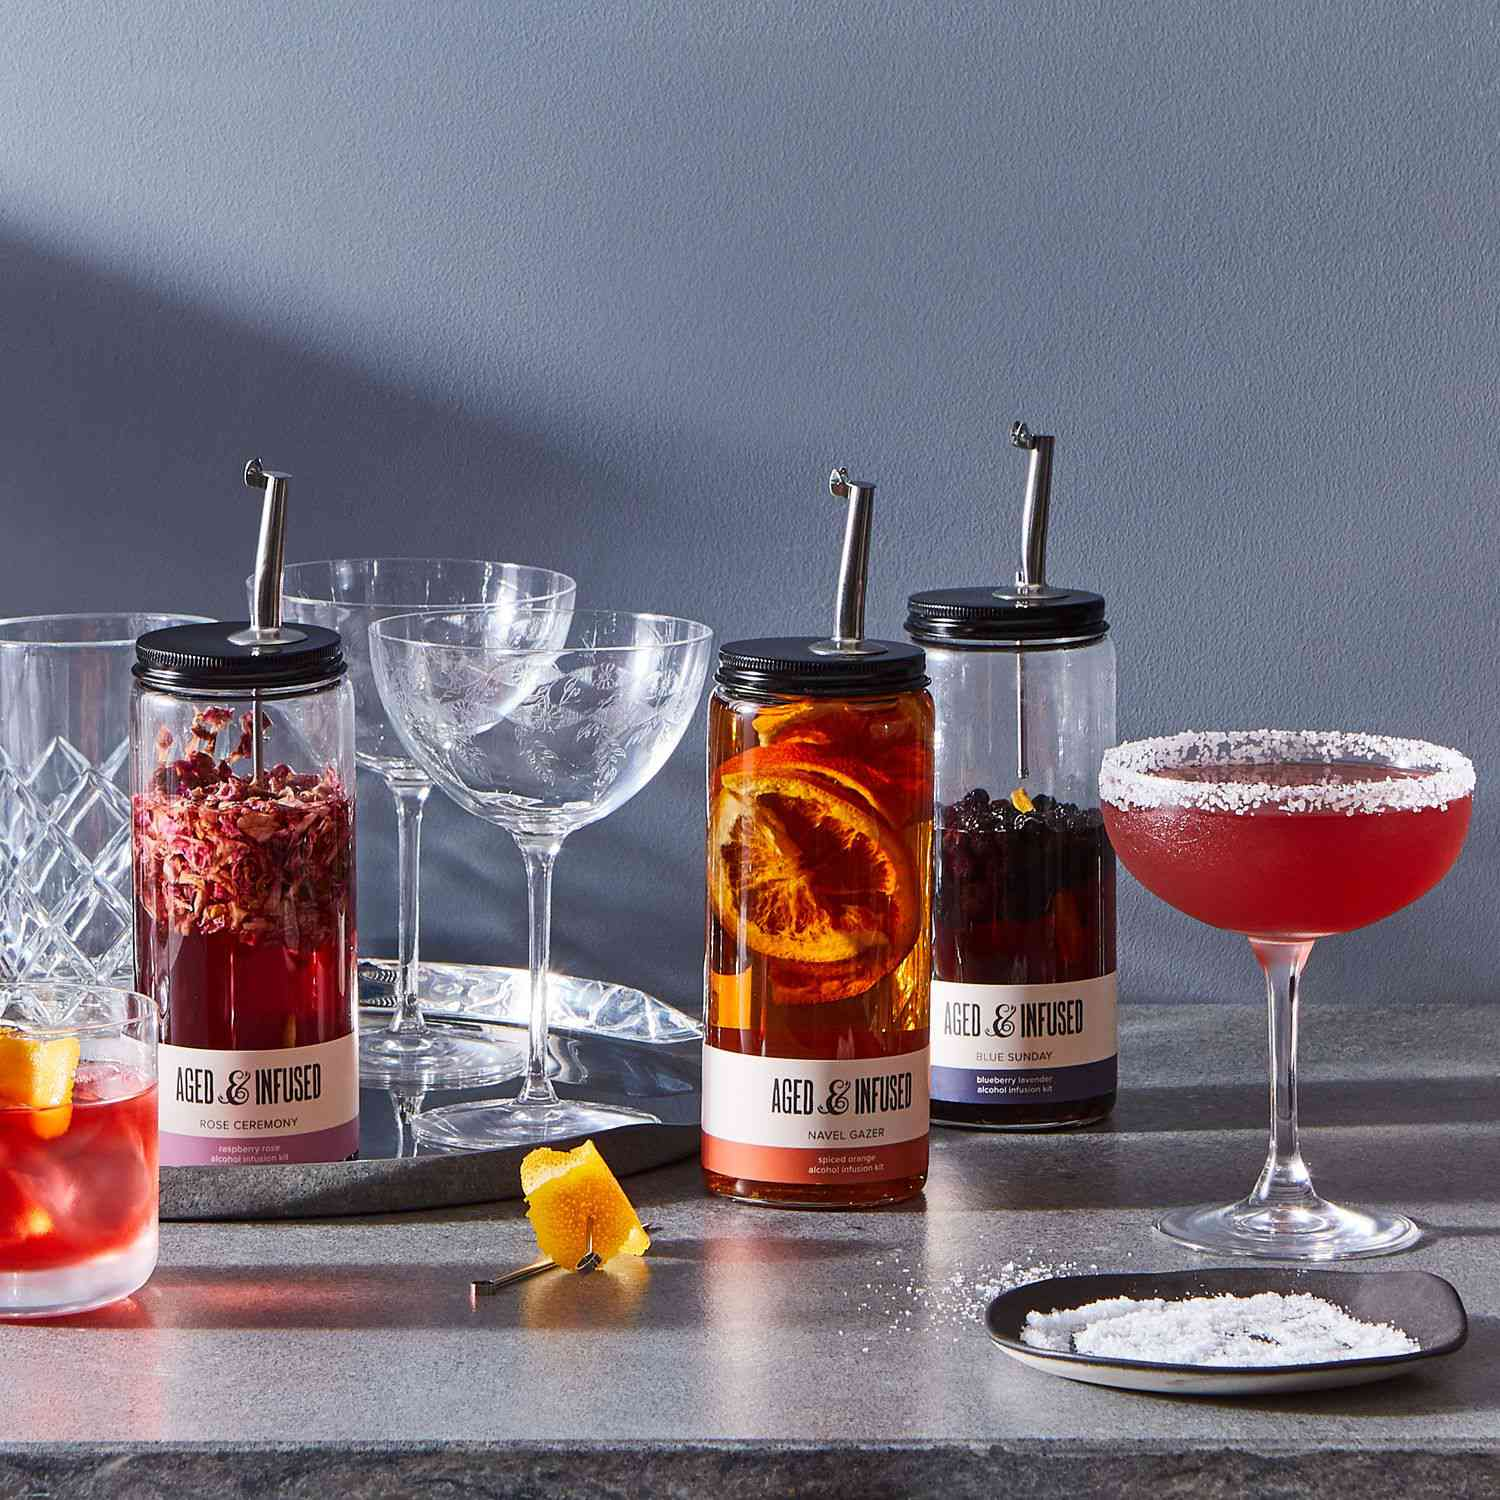 Food53 Aged & Infused Natural Liquor Infusion Kit